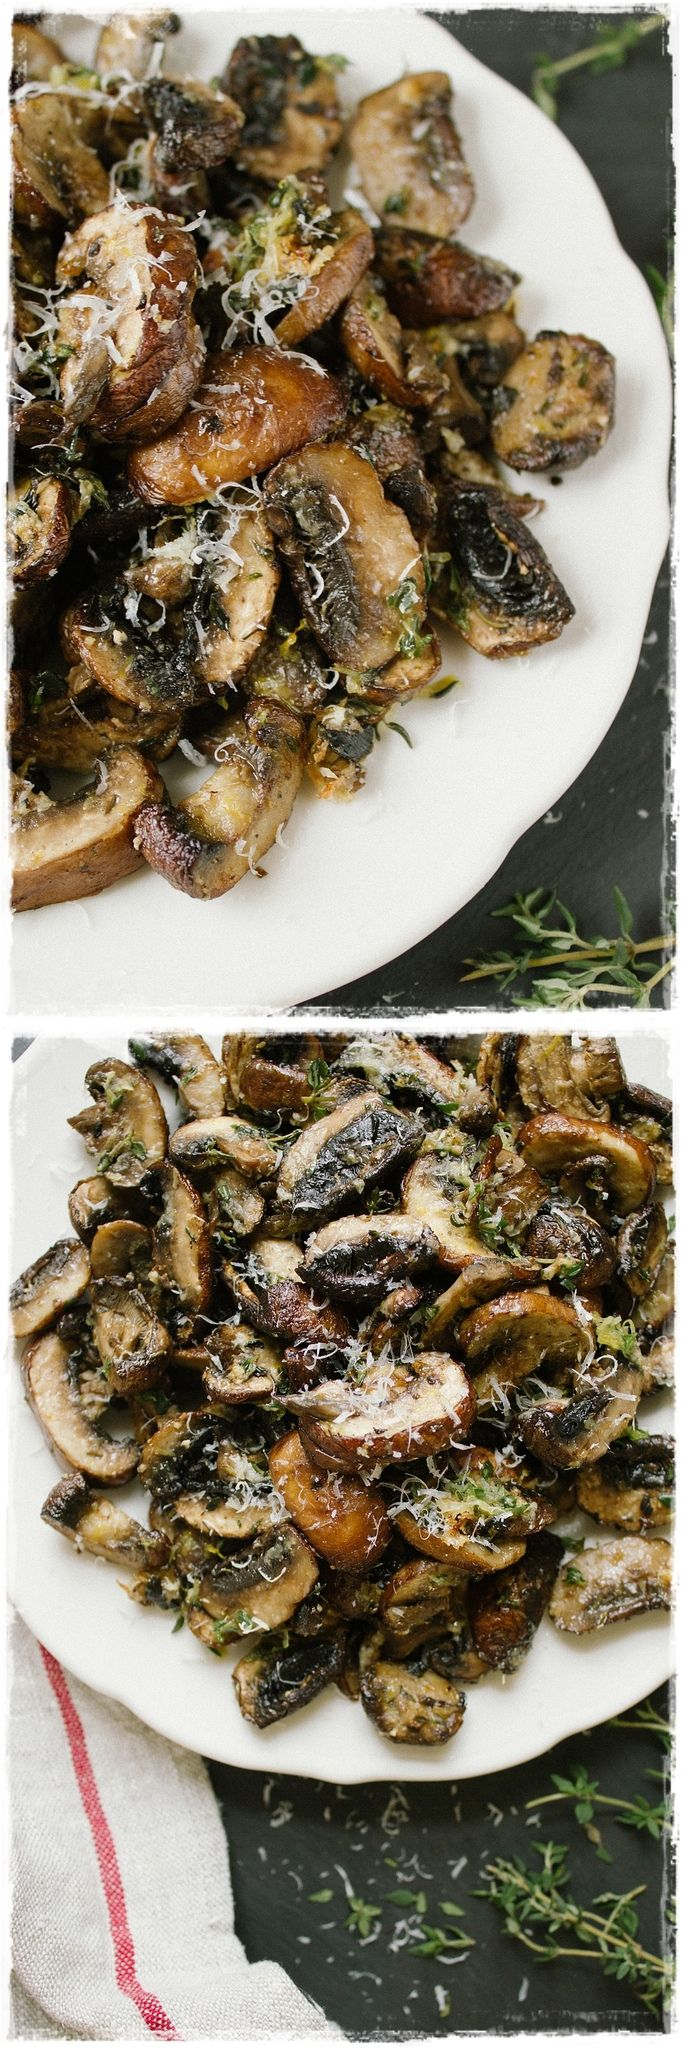 Baked Lemon and Thyme Mushrooms